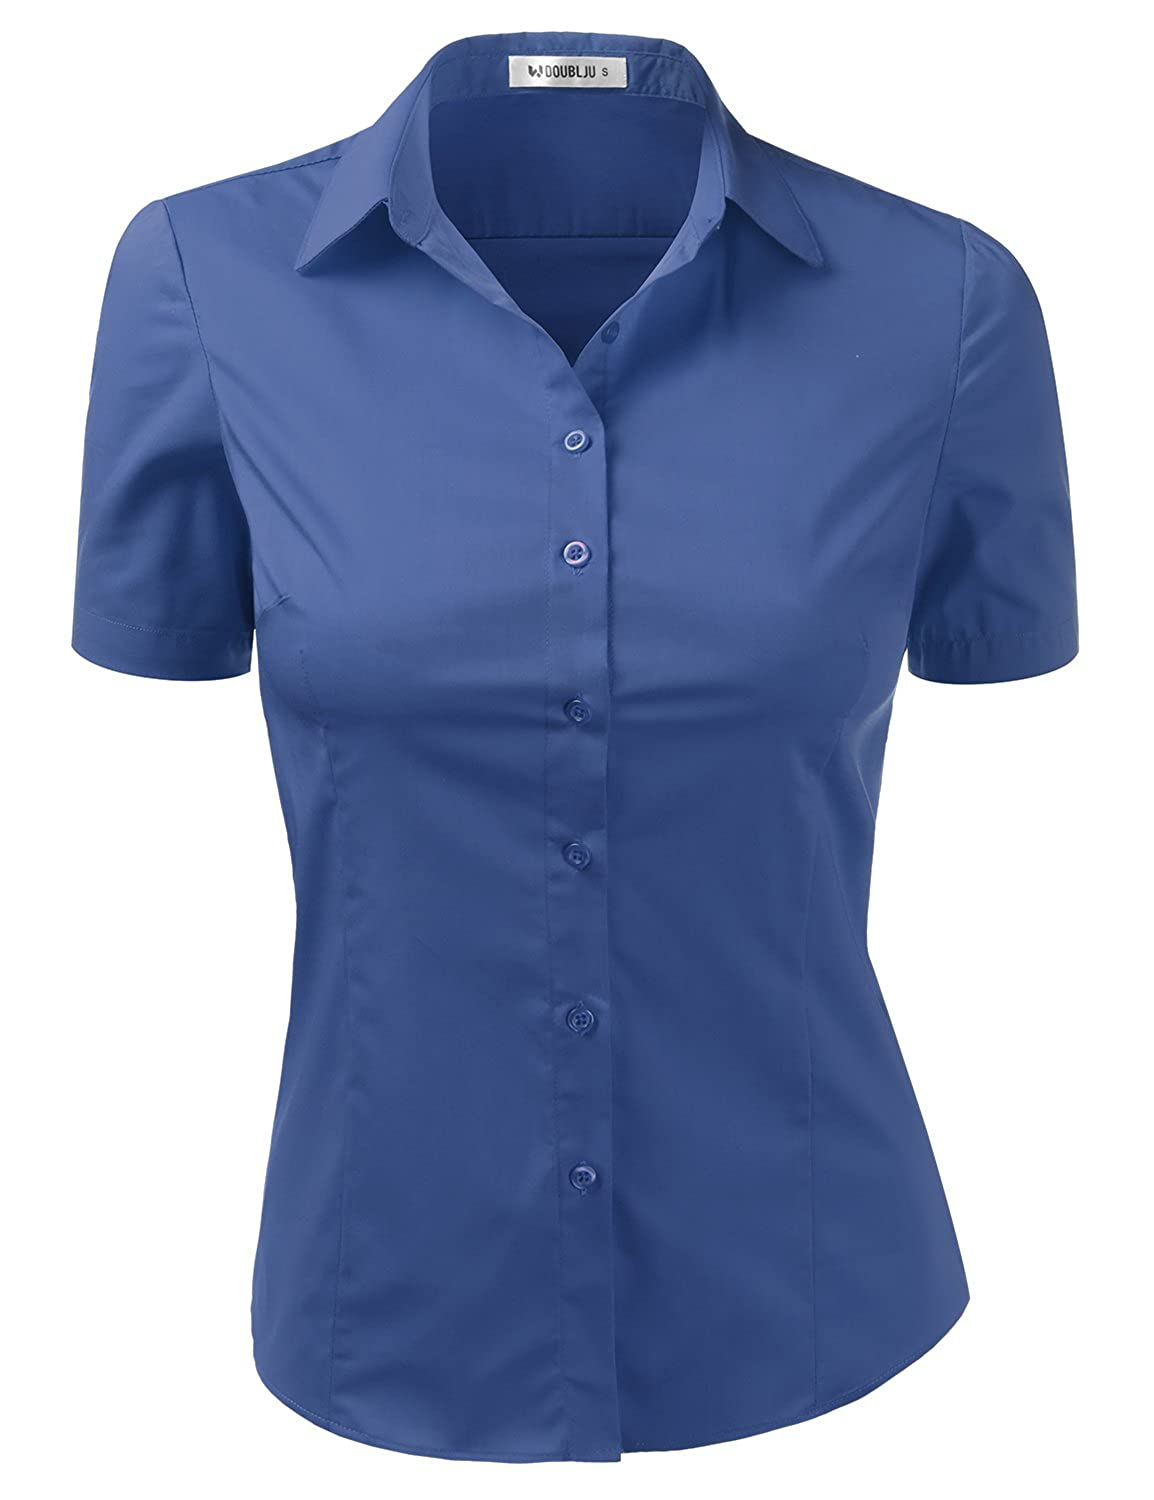 Cwtsts010_royalbluee Doublju Womens Basic Simple Short Sleeve Button Down Shirt With Plus Size